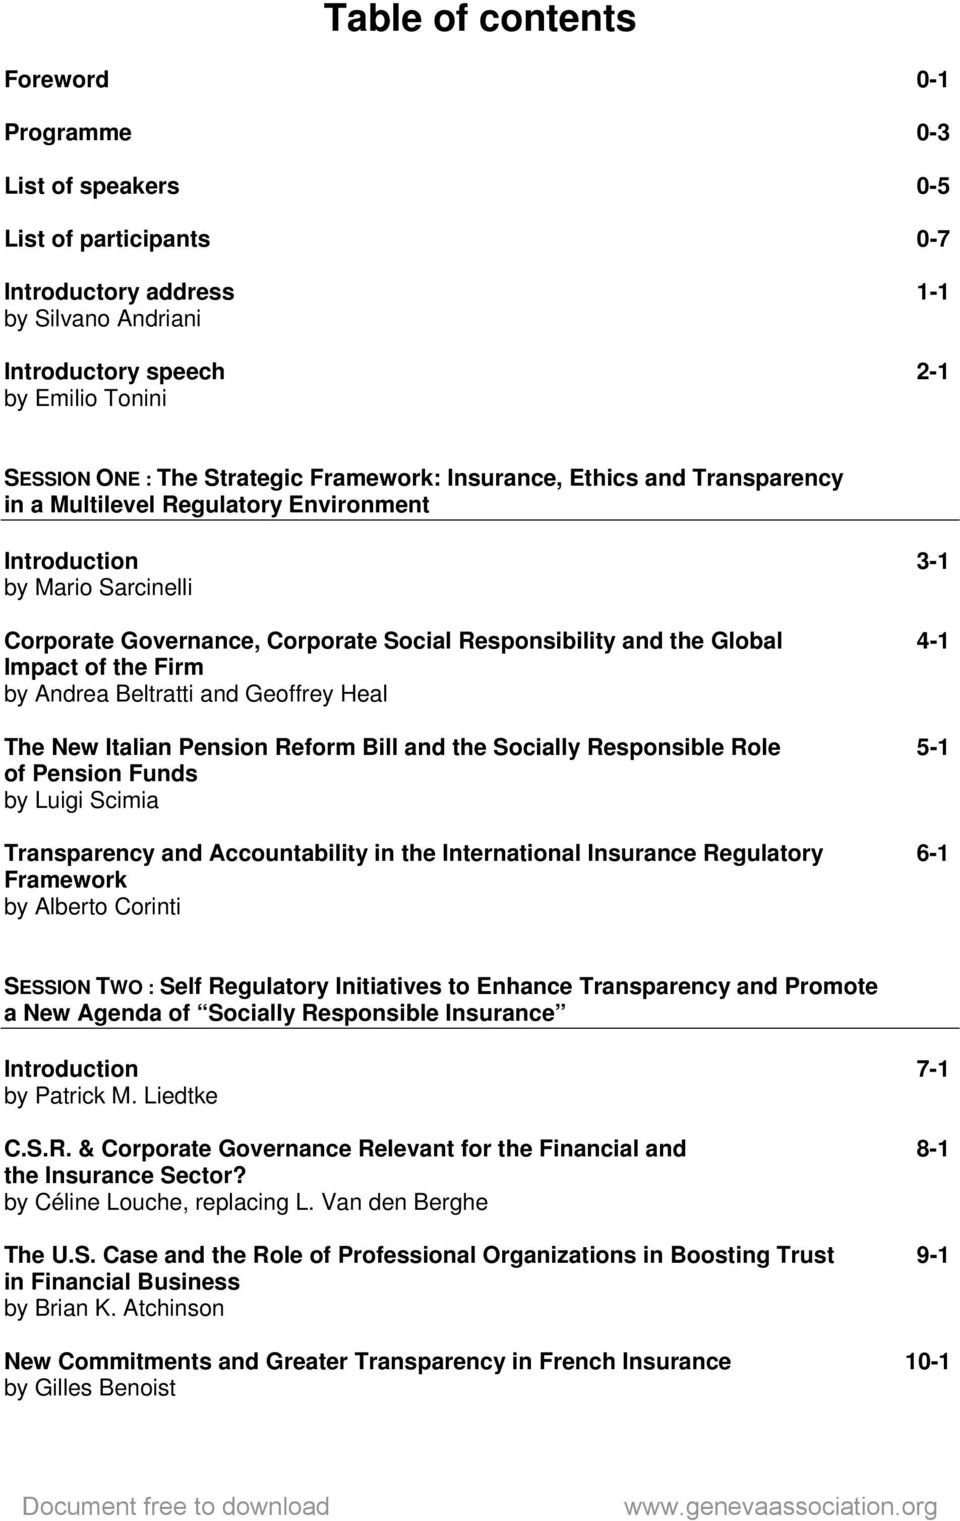 Global 4-1 Impact of the Firm by Andrea Beltratti and Geoffrey Heal The New Italian Pension Reform Bill and the Socially Responsible Role 5-1 of Pension Funds by Luigi Scimia Transparency and